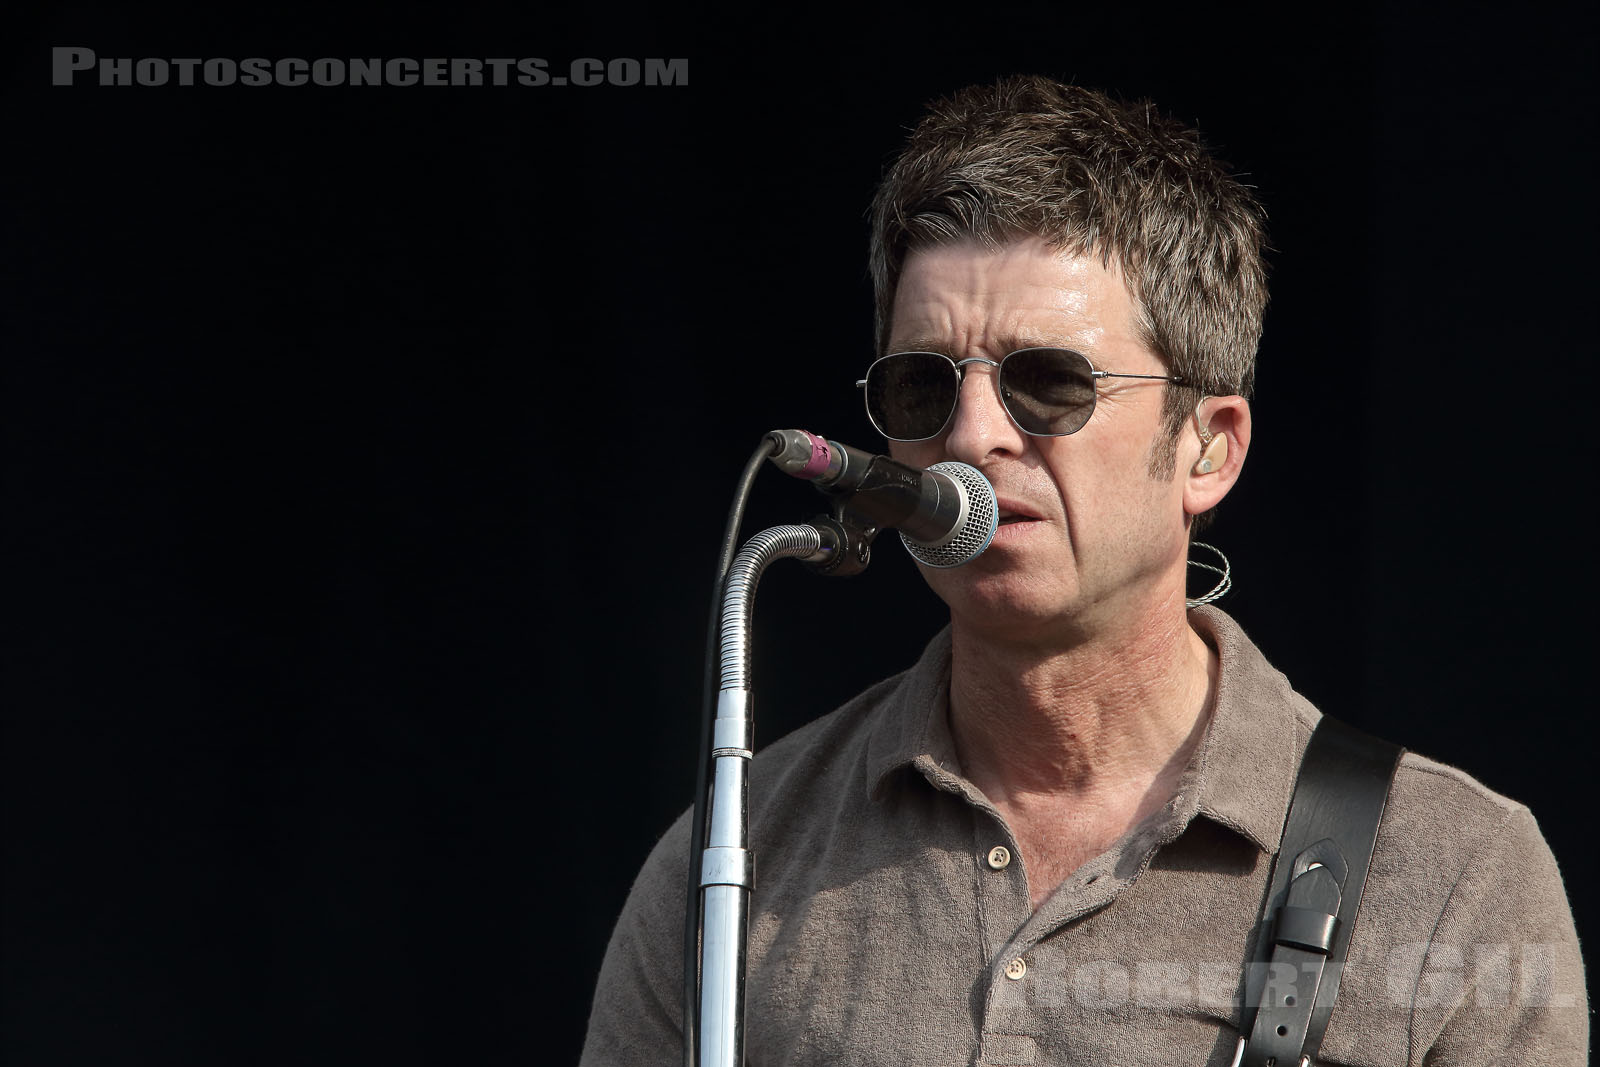 NOEL GALLAGHER'S HIGH FLYING BIRDS - 2018-07-22 - PARIS - Hippodrome de Longchamp - Main Stage 2